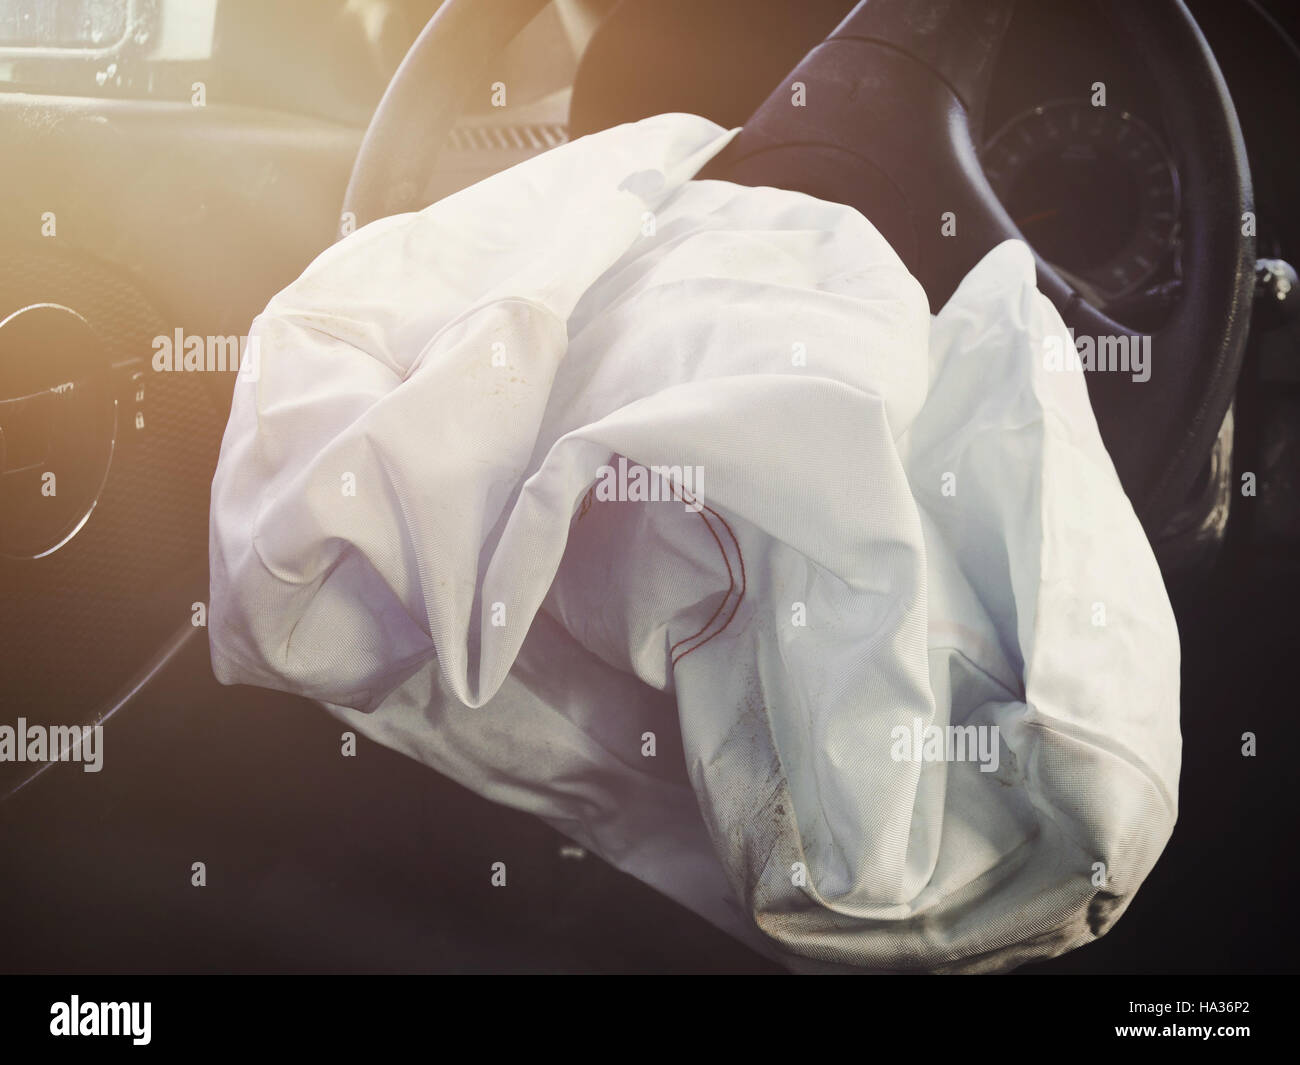 A front car airbag has deflated in a steering wheel from an accident. Use it for a safety or insurance concept. - Stock Image